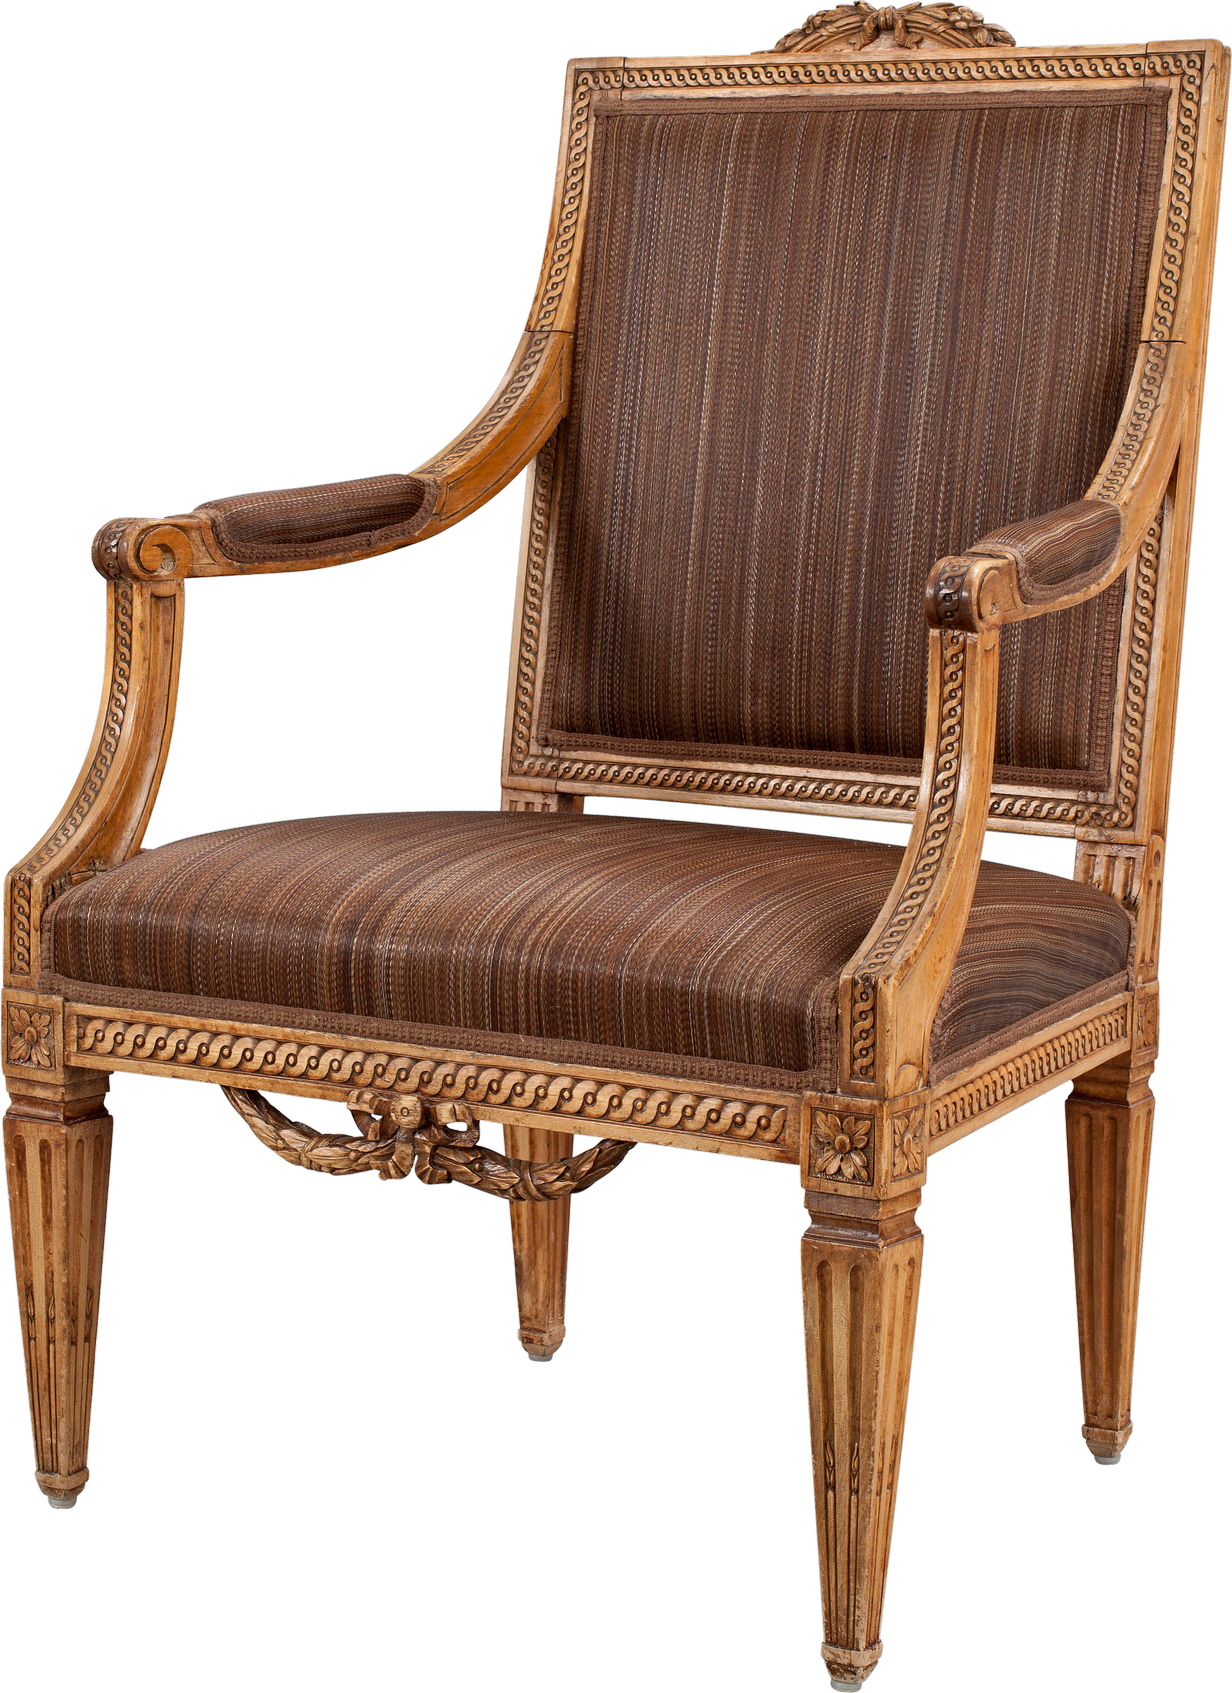 Armchair Png Image Armchair Chair Design Png Images